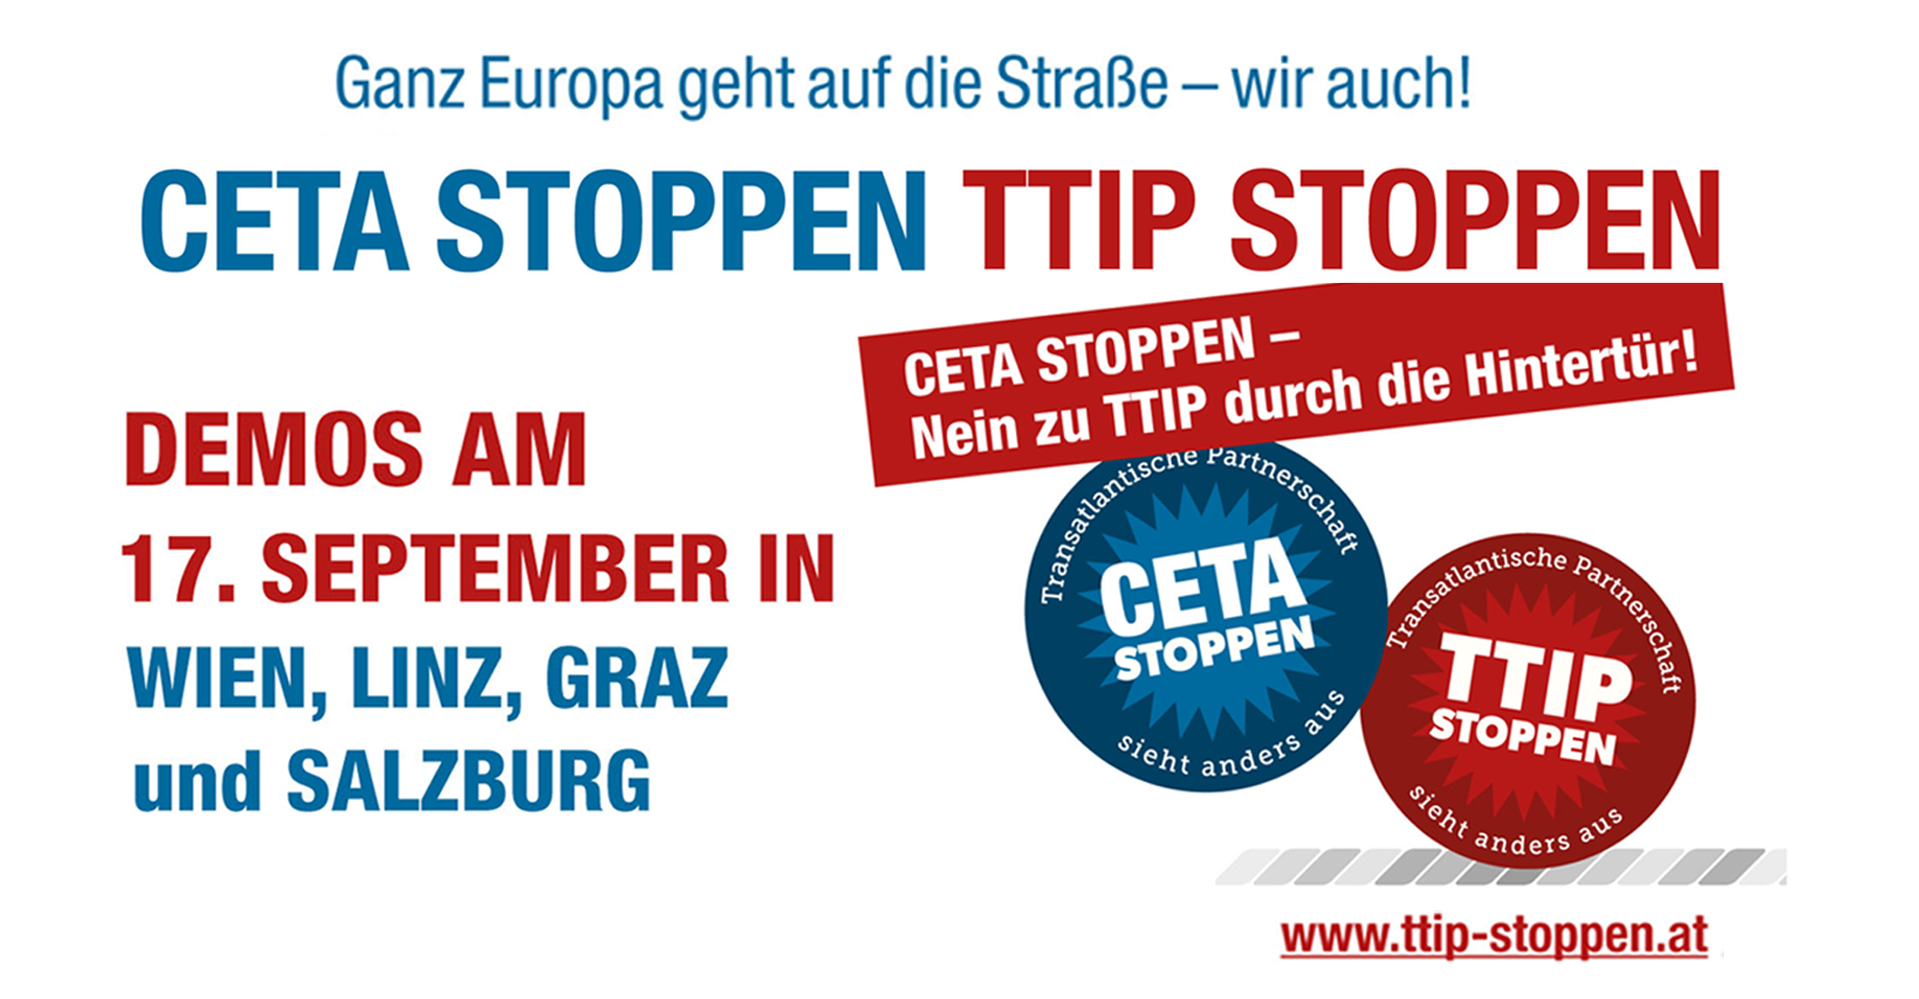 https://www.ttip-stoppen.at/wp-content/uploads/2016/07/Facebook-Aktionstag-CETA-Thumb.jpg